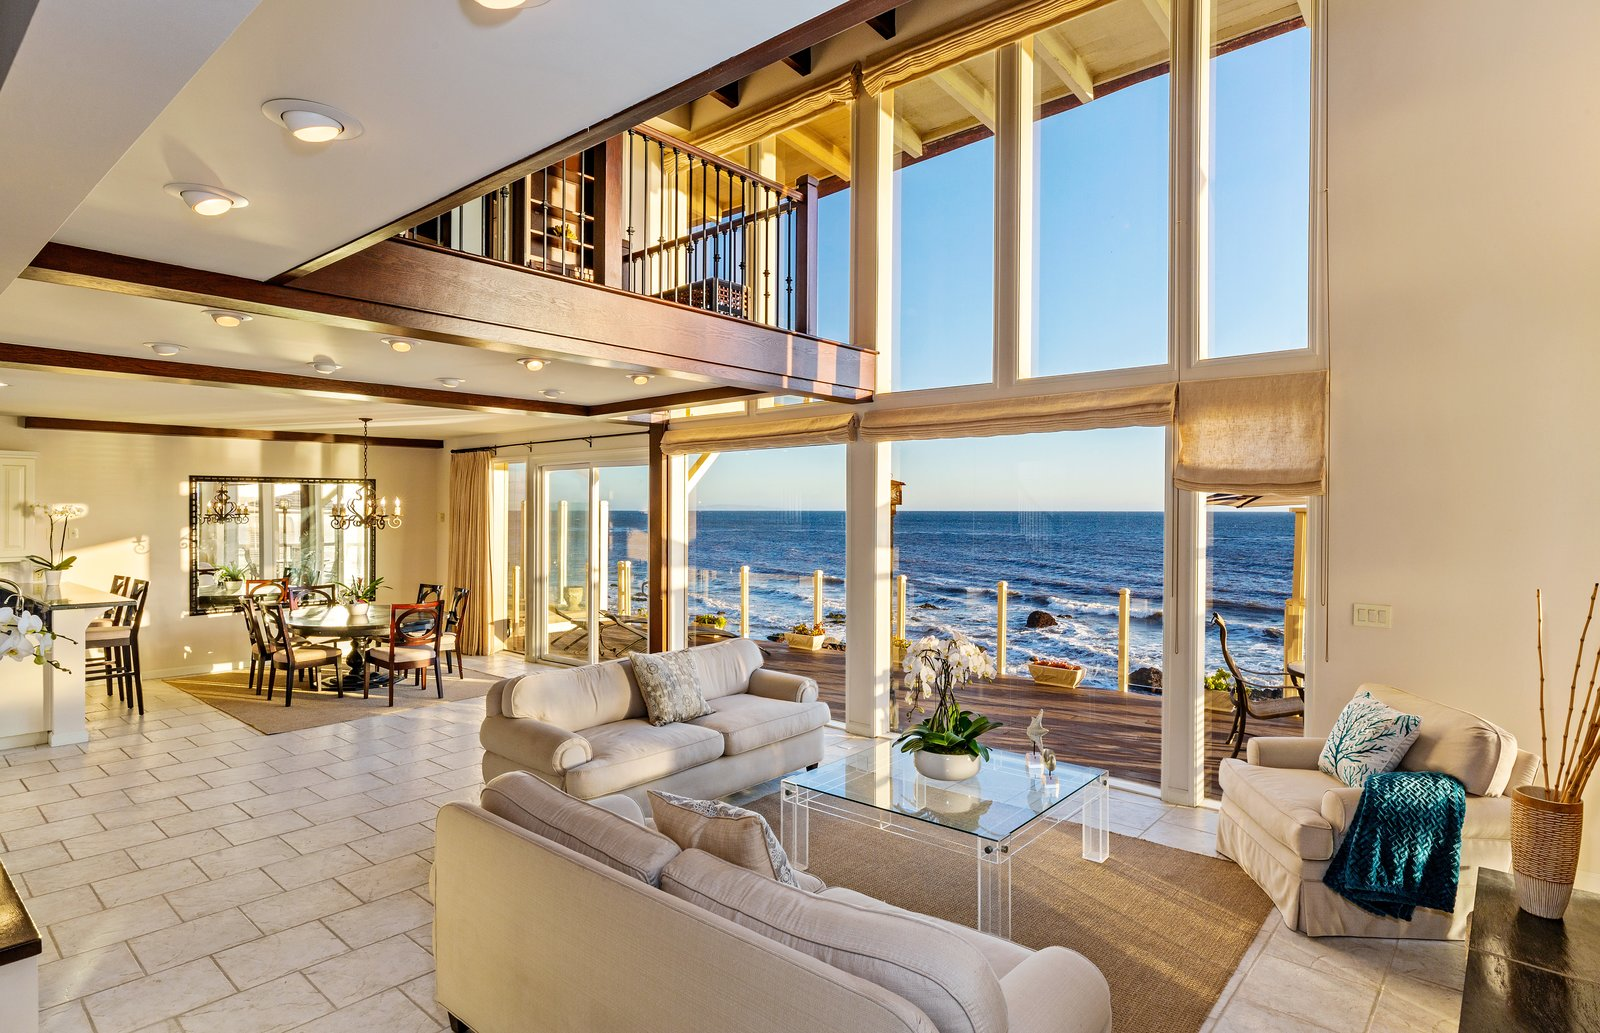 Living Room, Table, Ceiling Lighting, Sofa, Chair, Coffee Tables, Limestone Floor, Recessed Lighting, and Rug Floor The grand, two-story living space is filled with natural light.  Photo 6 of 12 in 'Brady Bunch' Actor Barry Williams Lists His Malibu Home For $6.4M